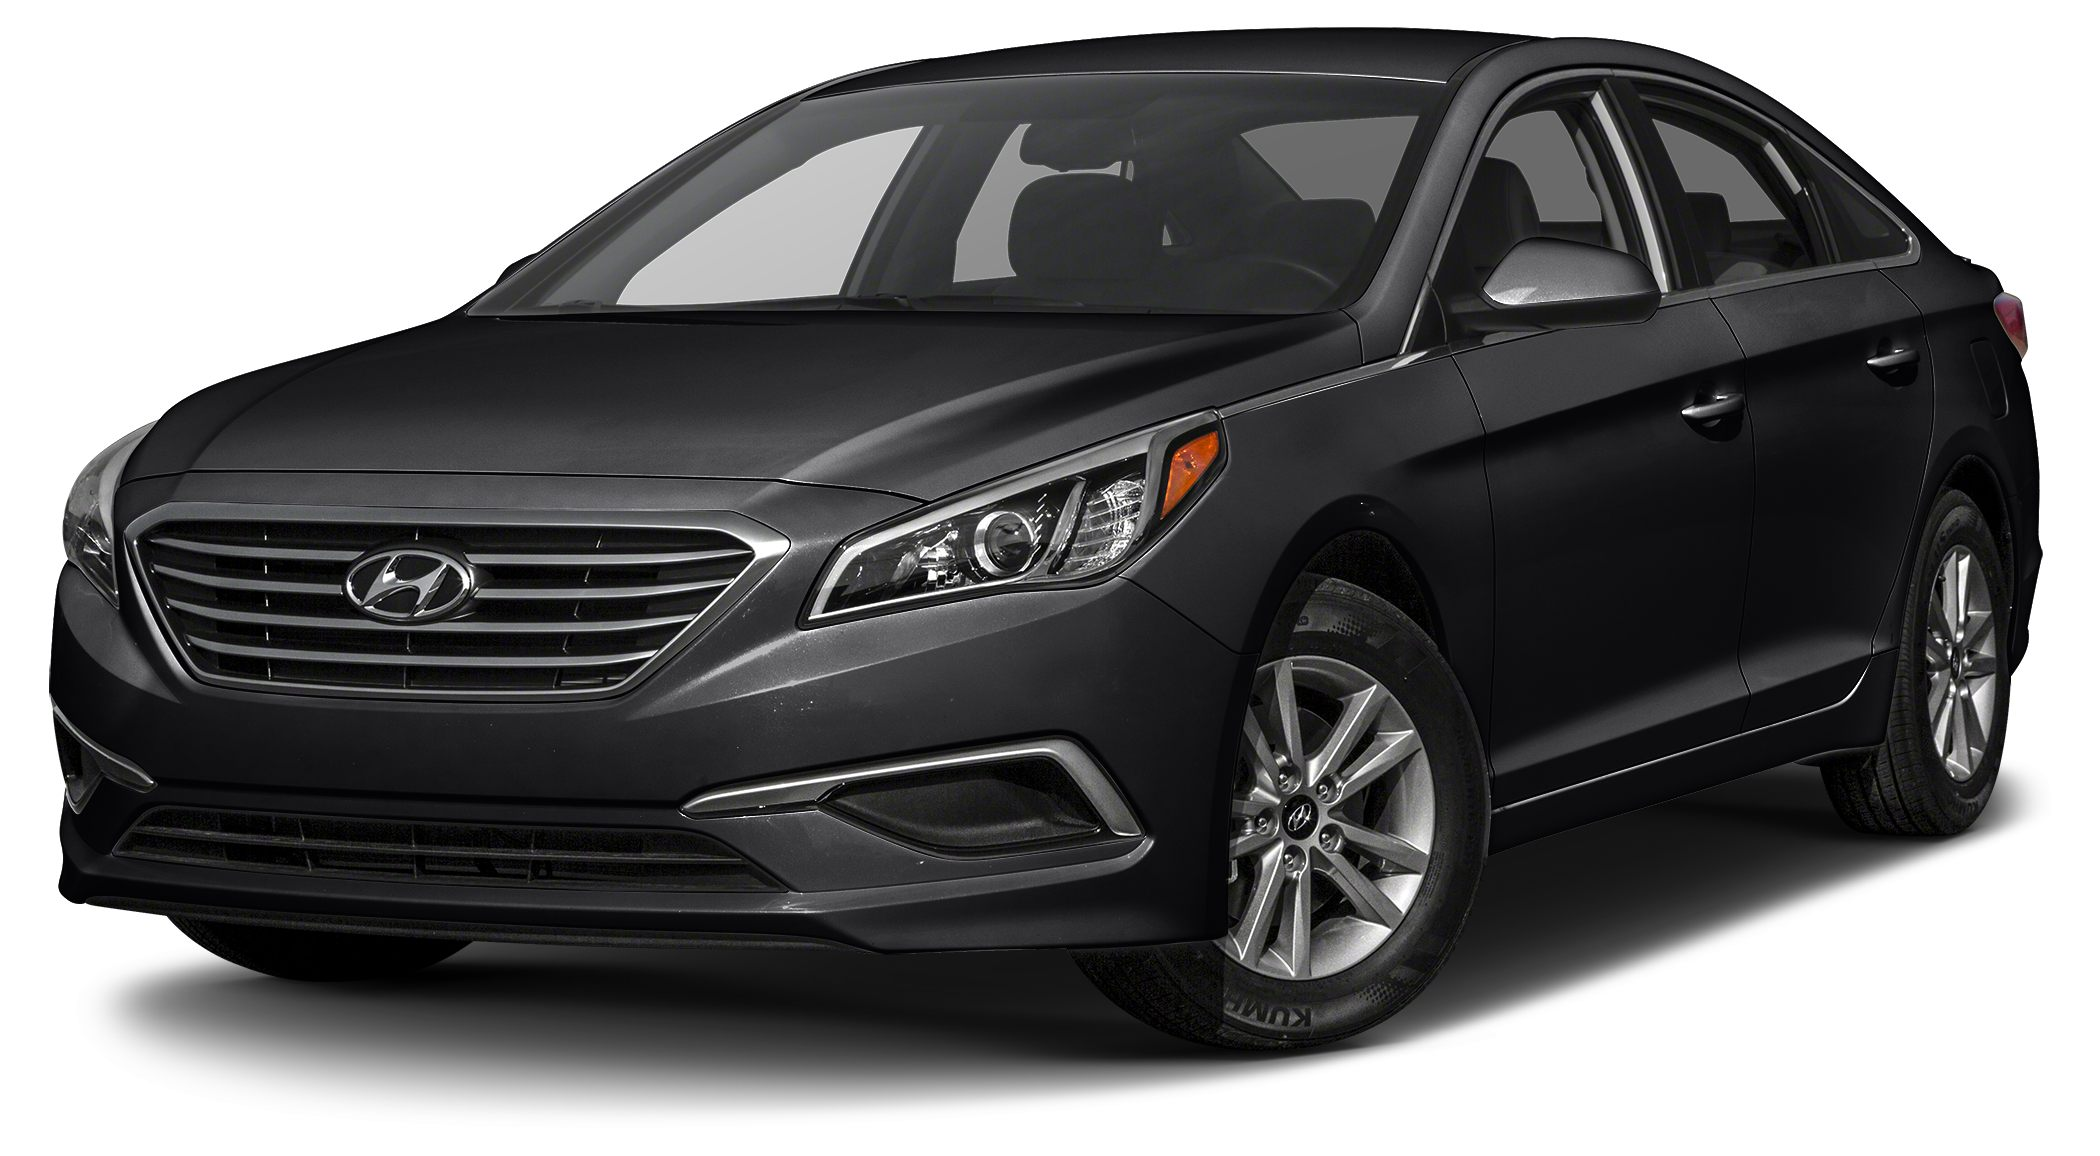 2017 Hyundai Sonata SE This 2017 Hyundai Sonata SE will sell fast This Sonata has many valuable o